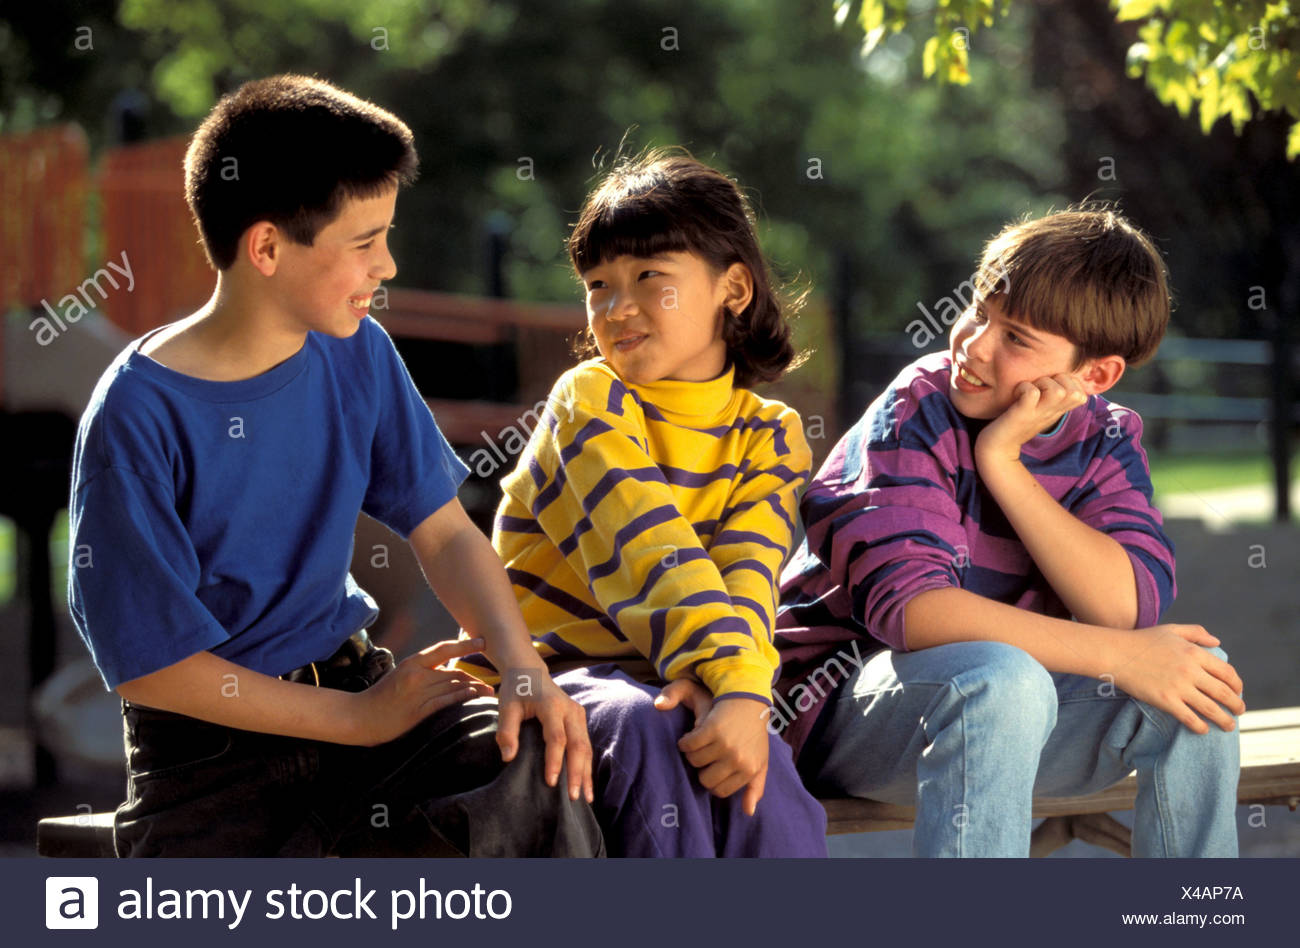 three children of different nationalities sitting on a bench